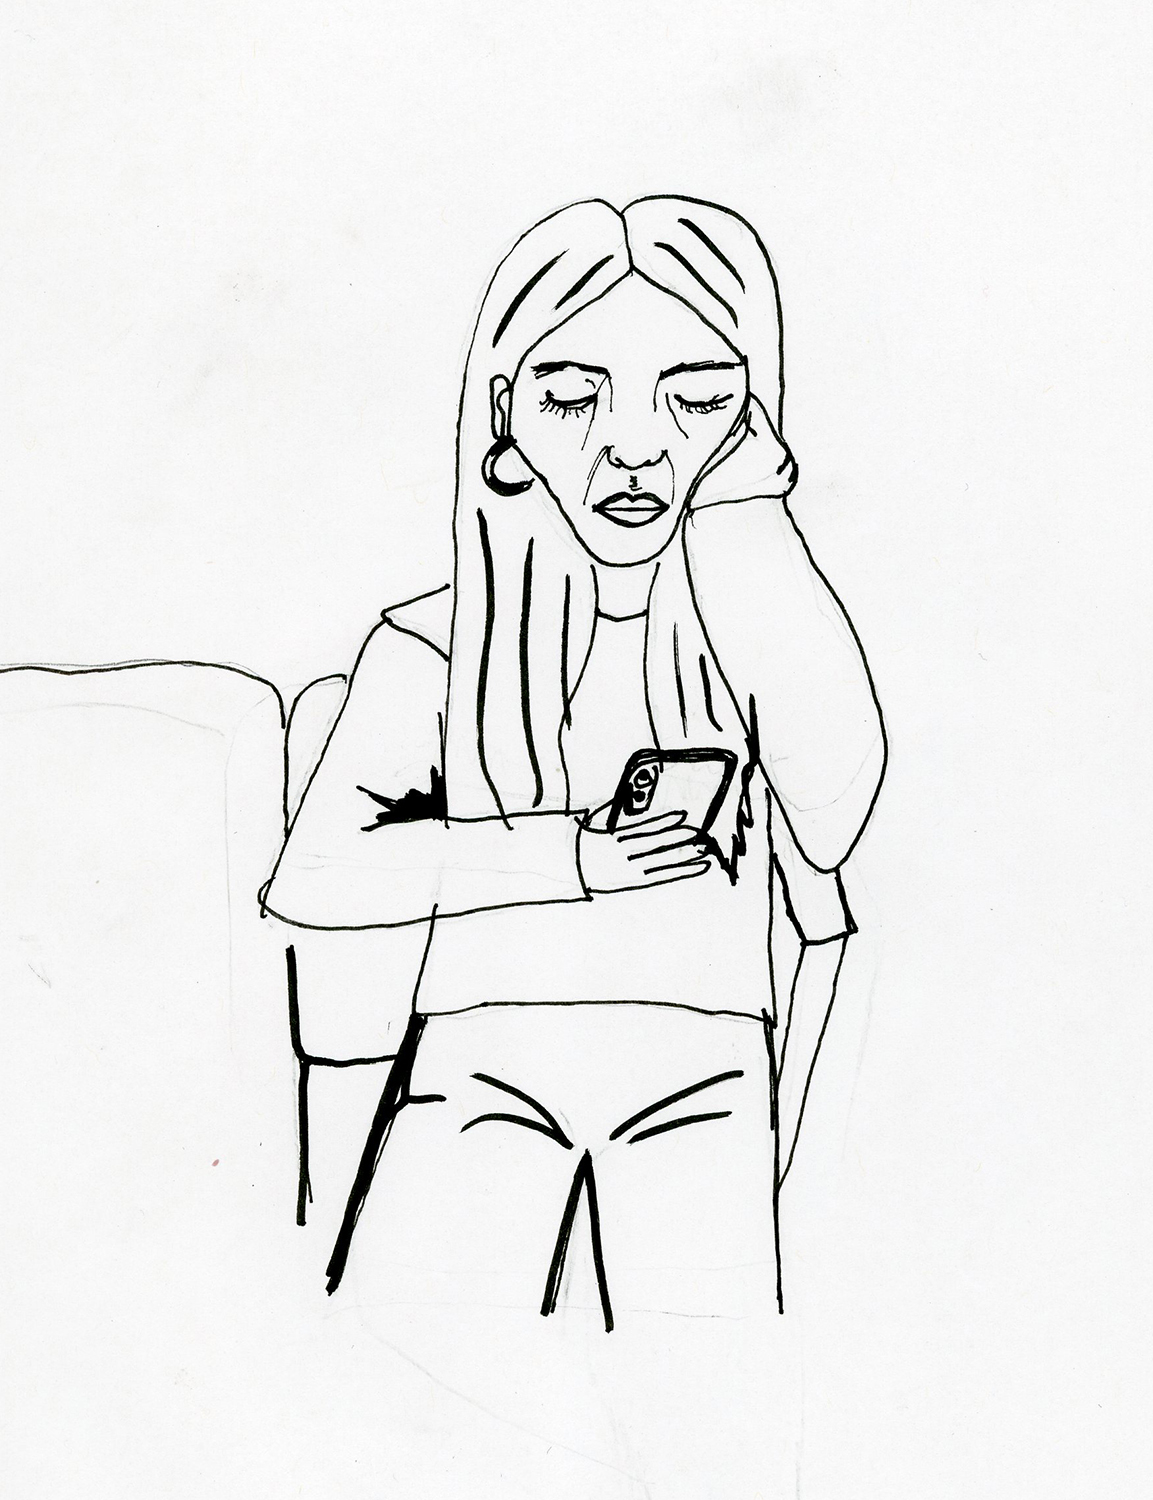 Illustration of a student looking at their phone. Illustration credit: Alex Stross.